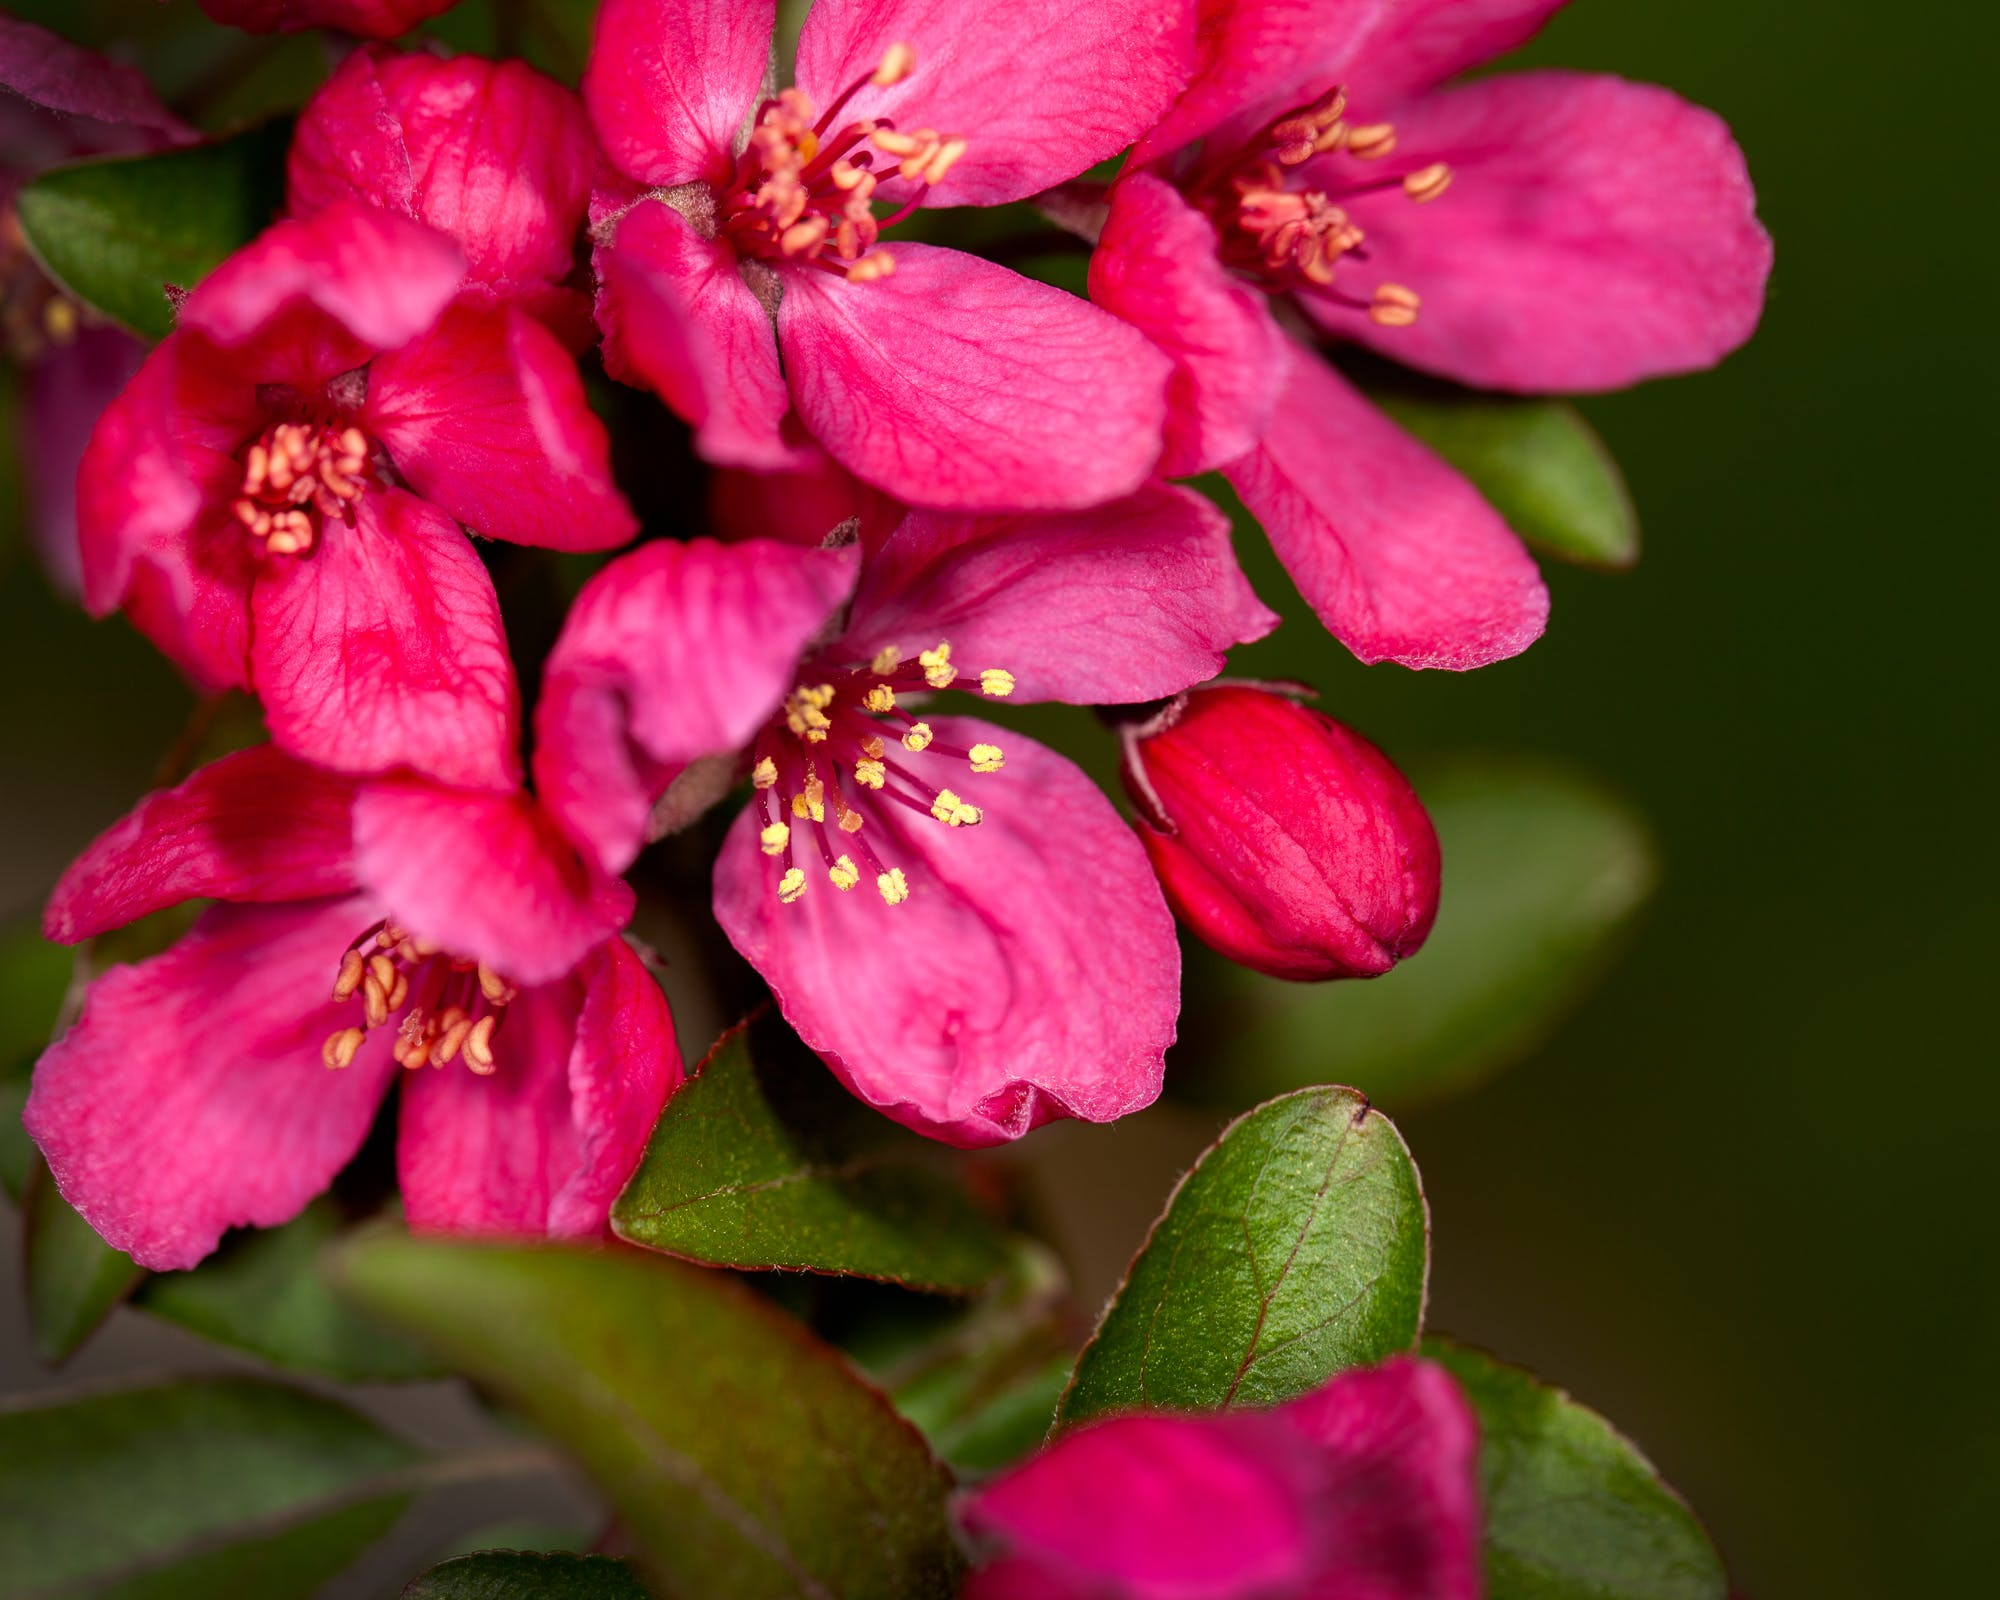 Free stock photo of apple blossom, flowers